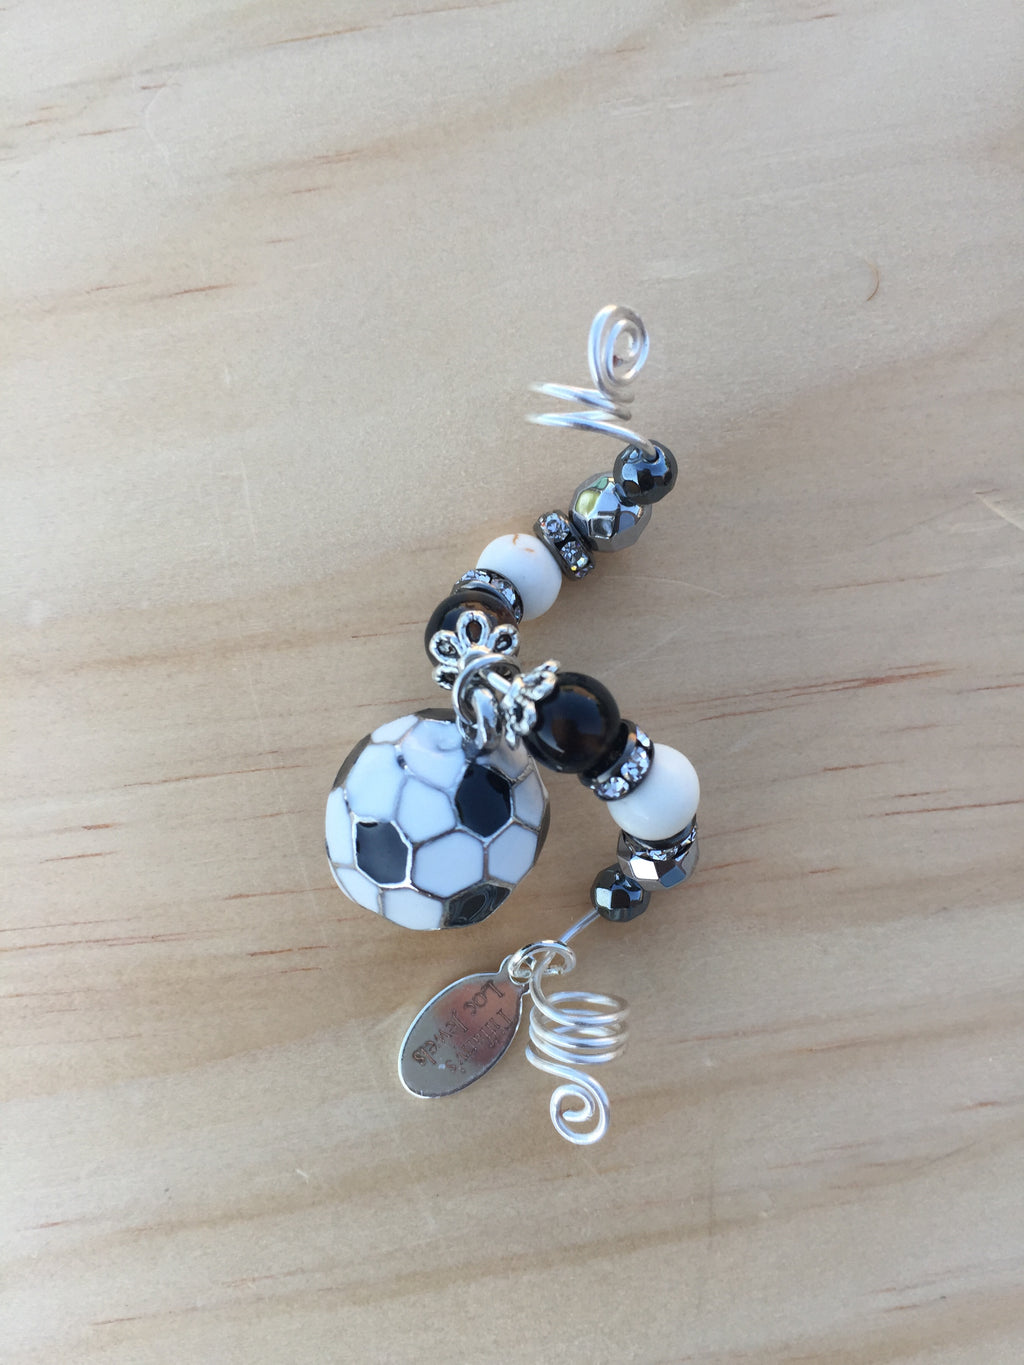 I LOVE SOCCER MAGNESITE & BLACKSTONE LOC JEWEL - TIFFANY'S LOC JEWELS